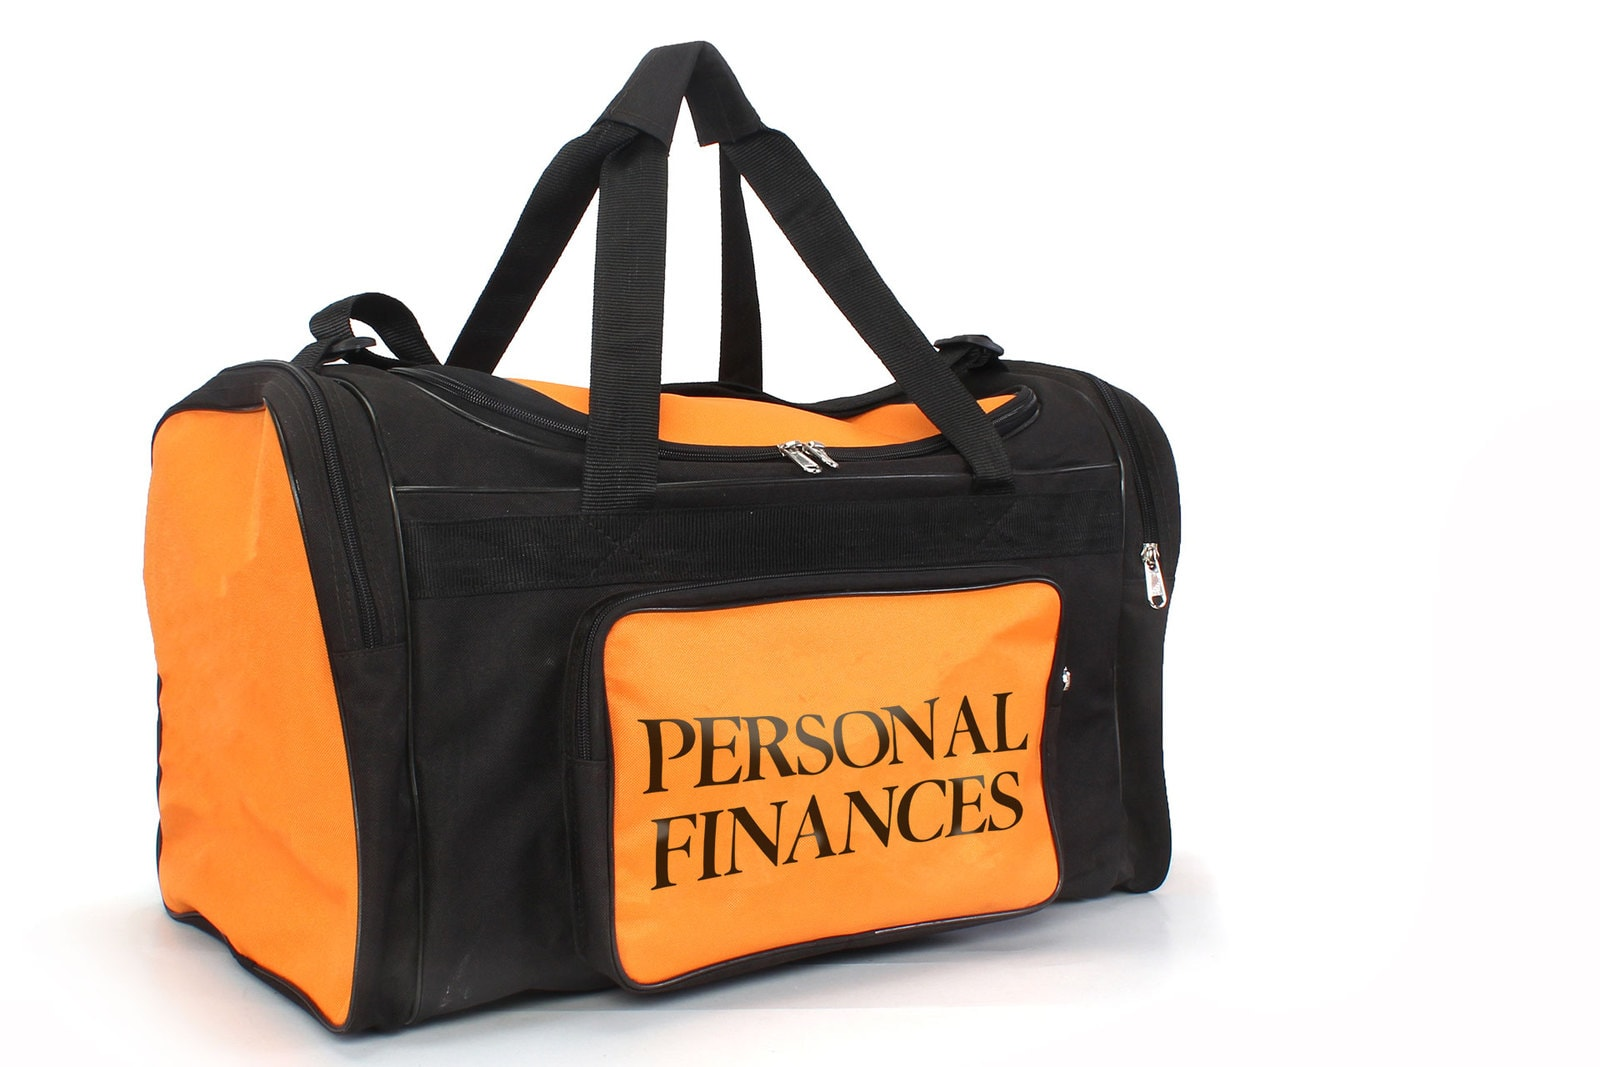 Understanding the necessity of a personal finances go-bag.